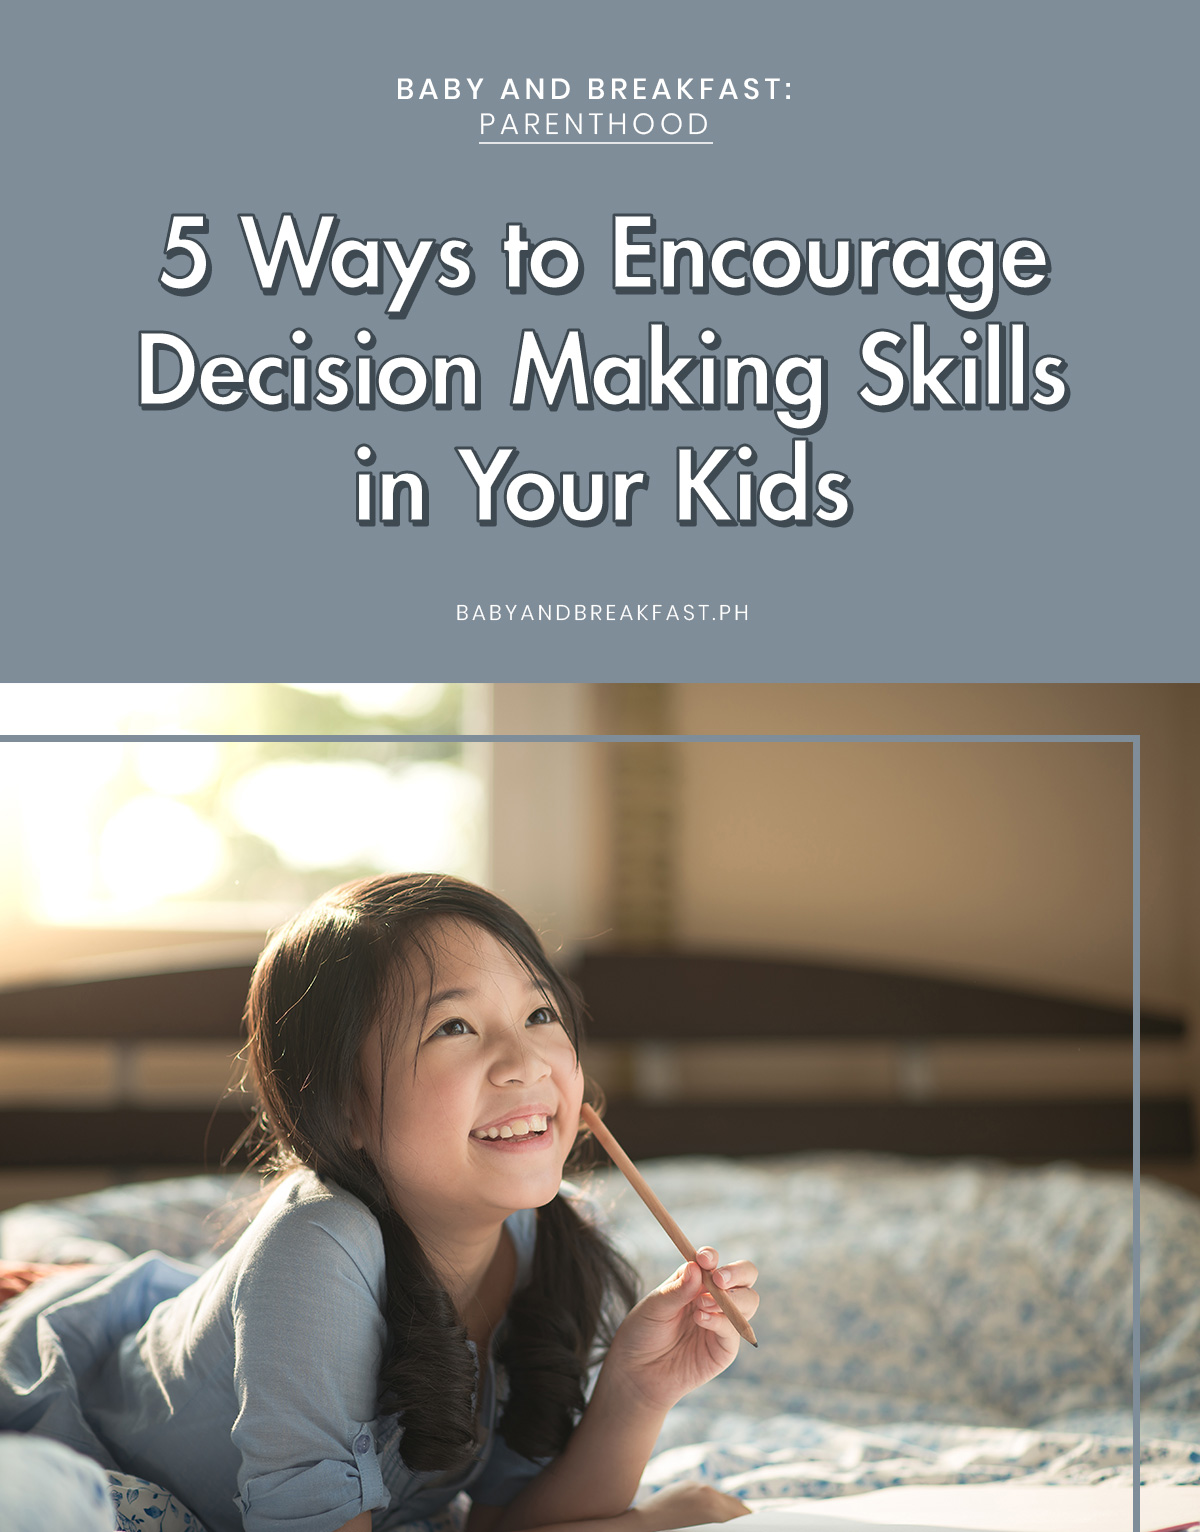 Baby and Breakfast: Parenthood 5 Ways to Encourage Decision Making Skills in Your Kids